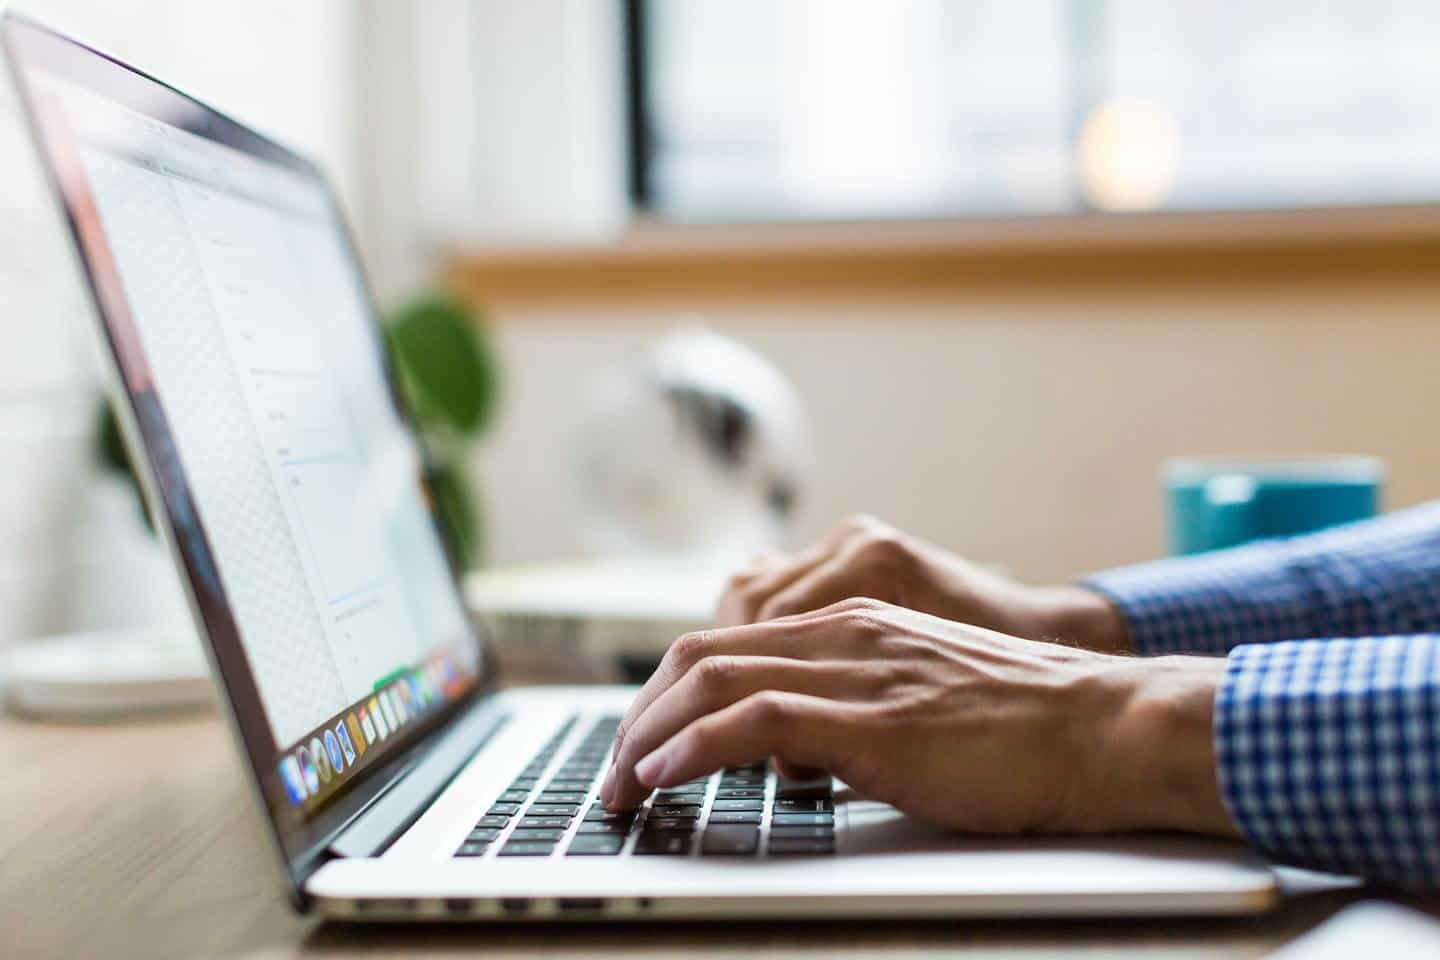 Bank Loans For People With Bad Credit >> 7 Data Entry Jobs to Earn from Home on Your Own Schedule